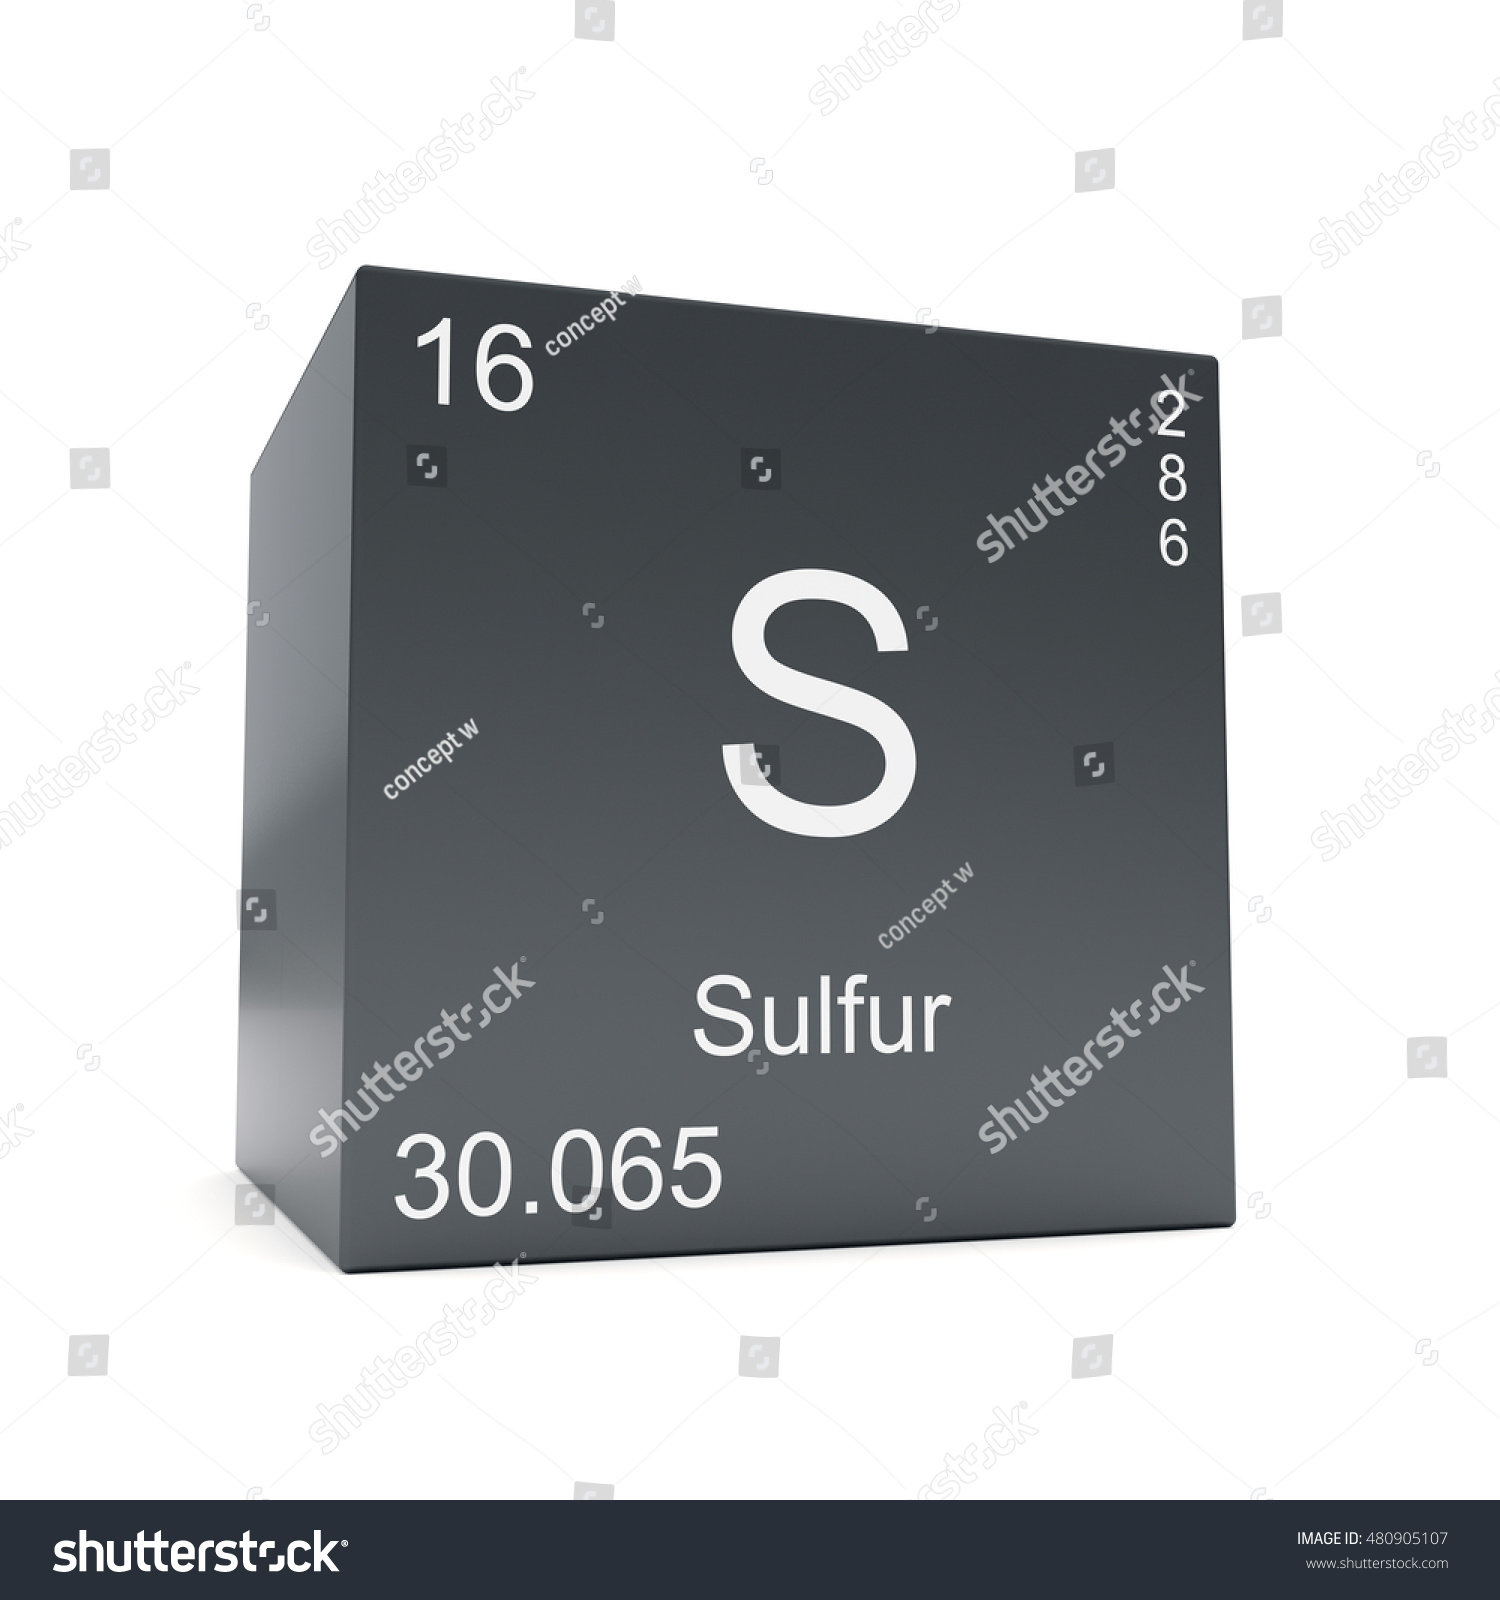 Sulfur Chemical Element Symbol Periodic Table Stock Illustration